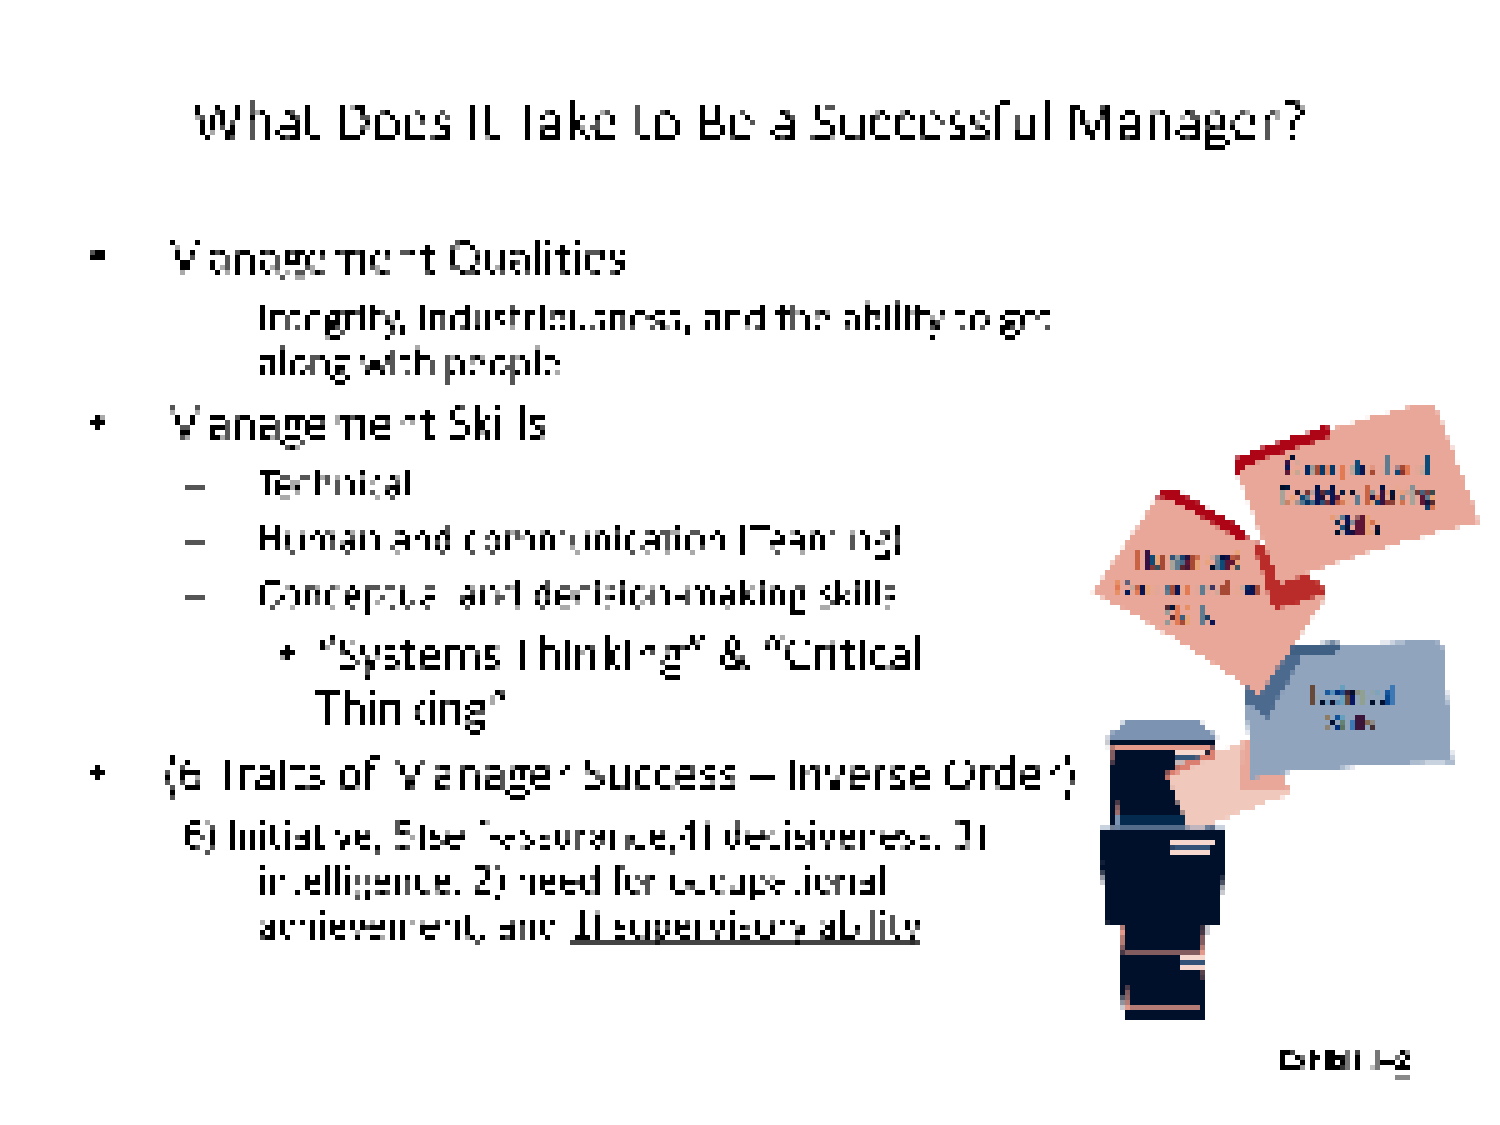 managing organizations boeing essay Discussing managerial issues associated with managing an organization's is infrastructure write a 700- to 1,050-word paper discussing managerial issues associated with managing an organization's is infrastructure.